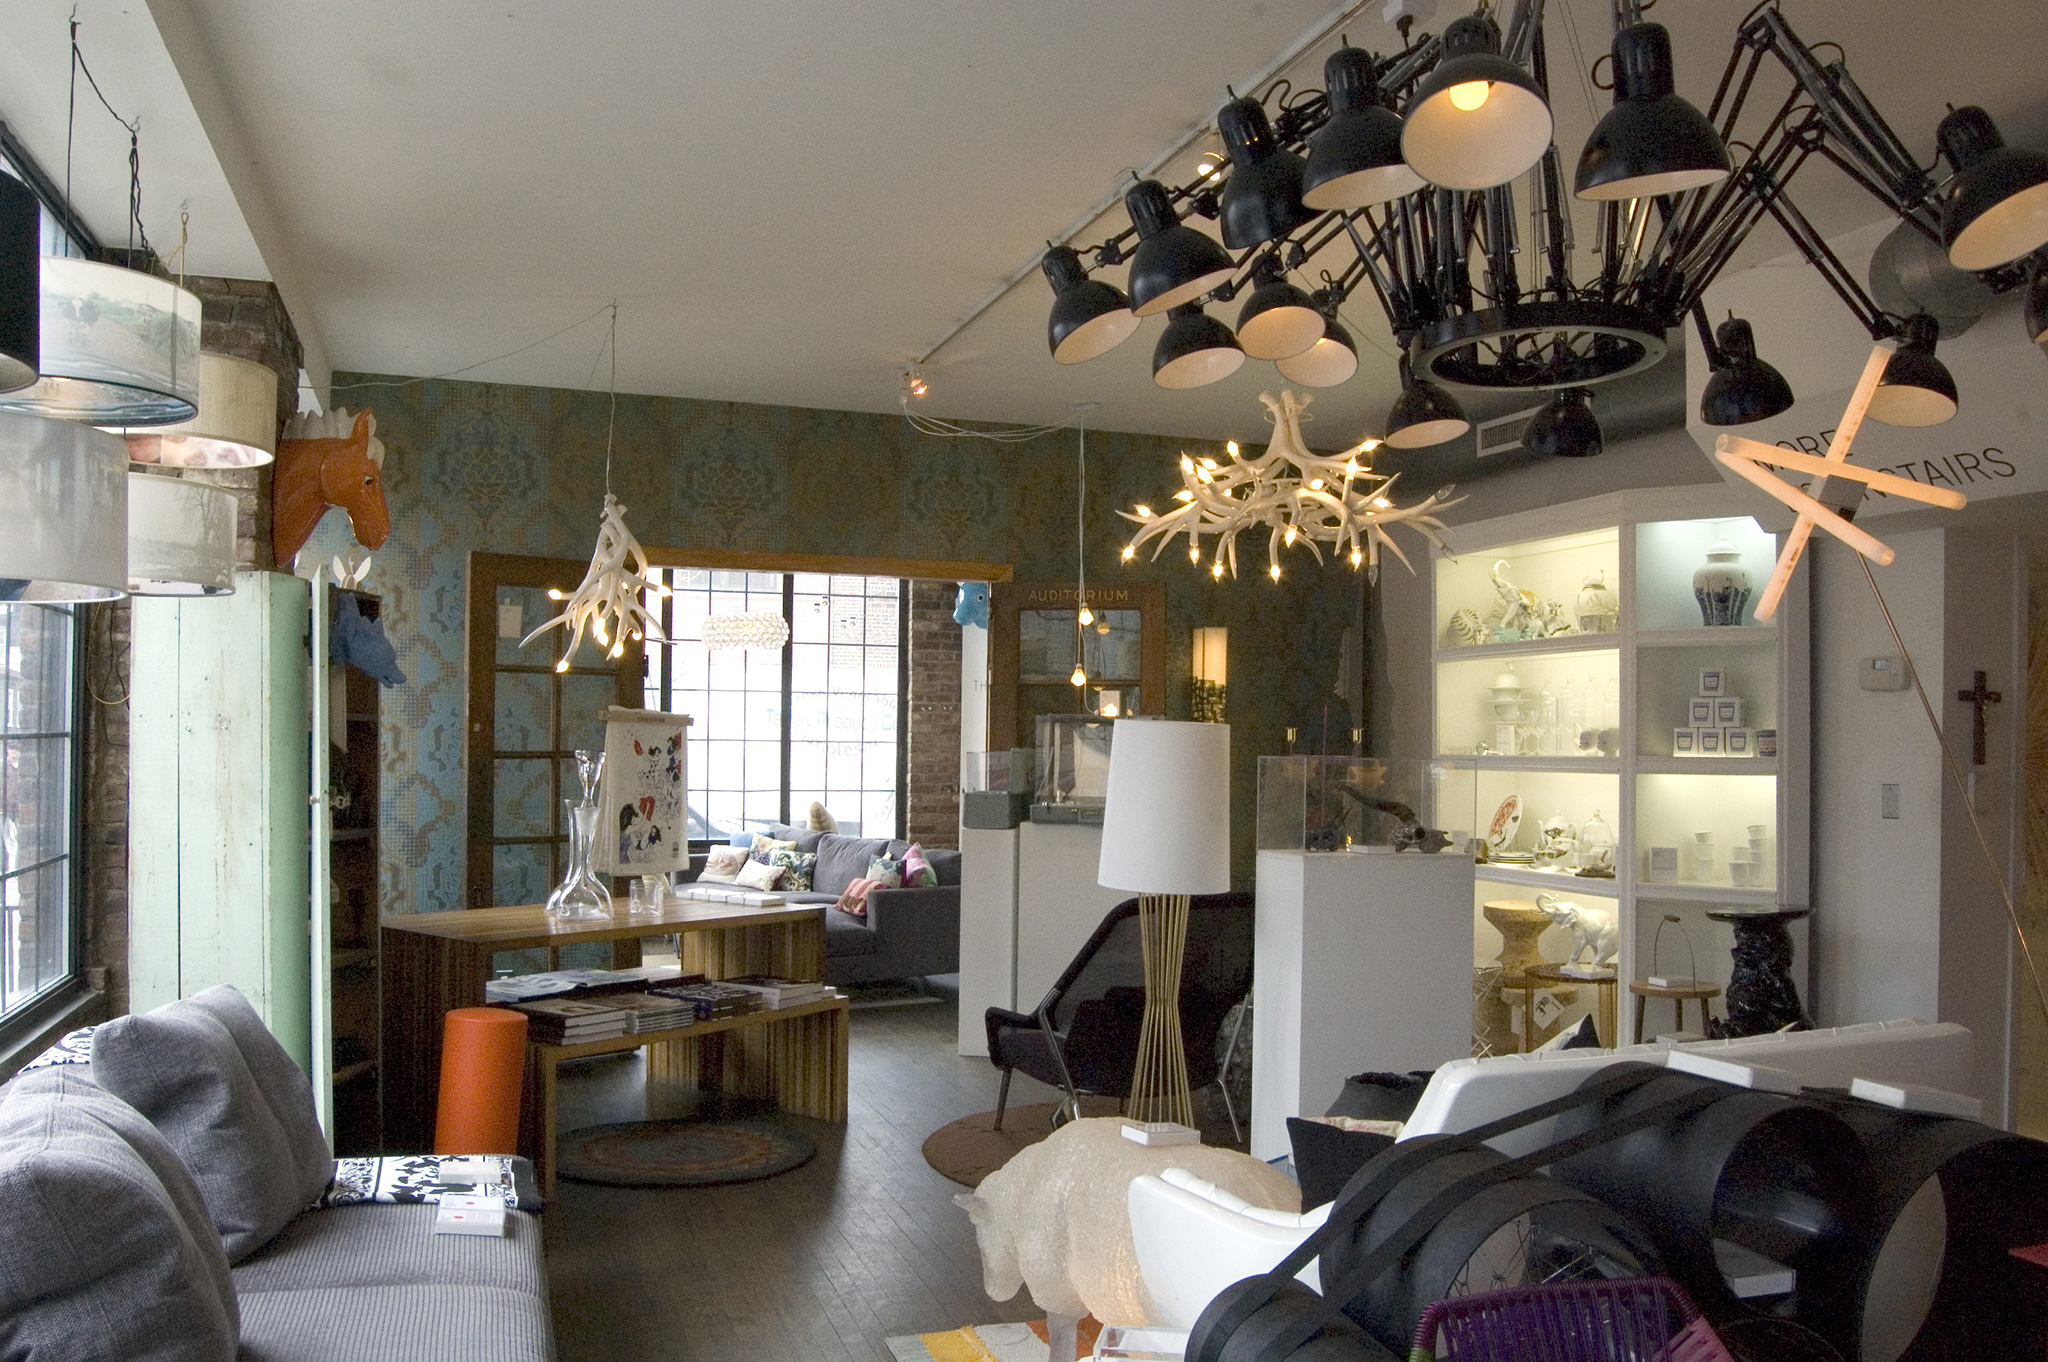 The Future Perfect. Home decor stores in NYC for decorating ideas and home furnishings